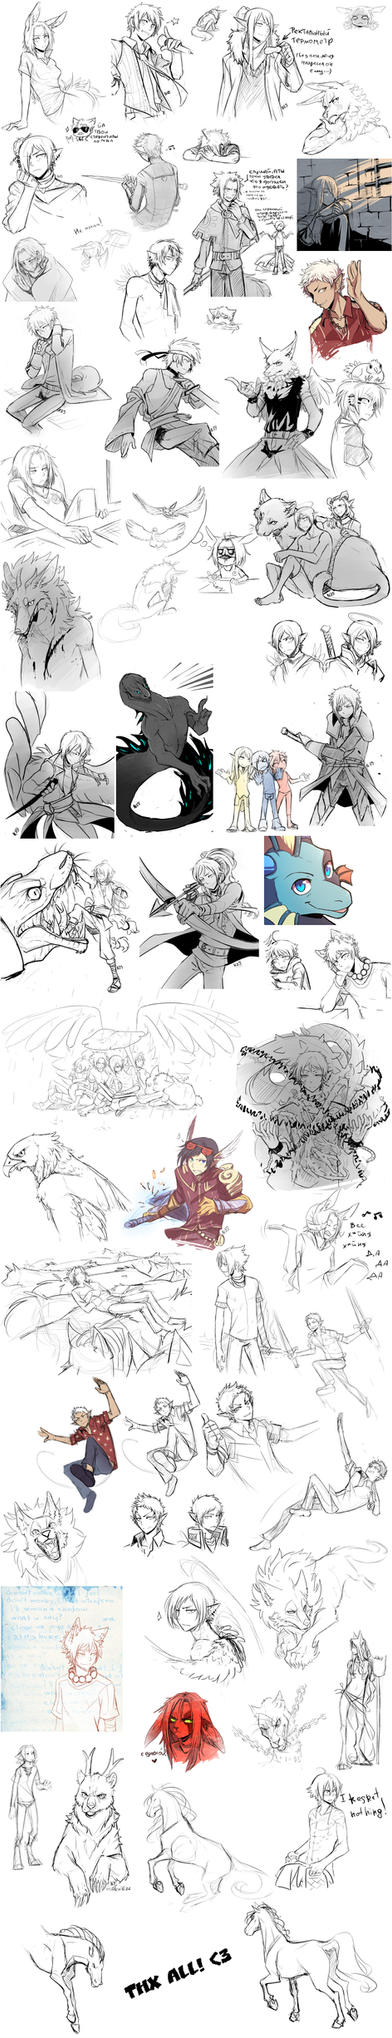 Sketchdump_010 by Nerior